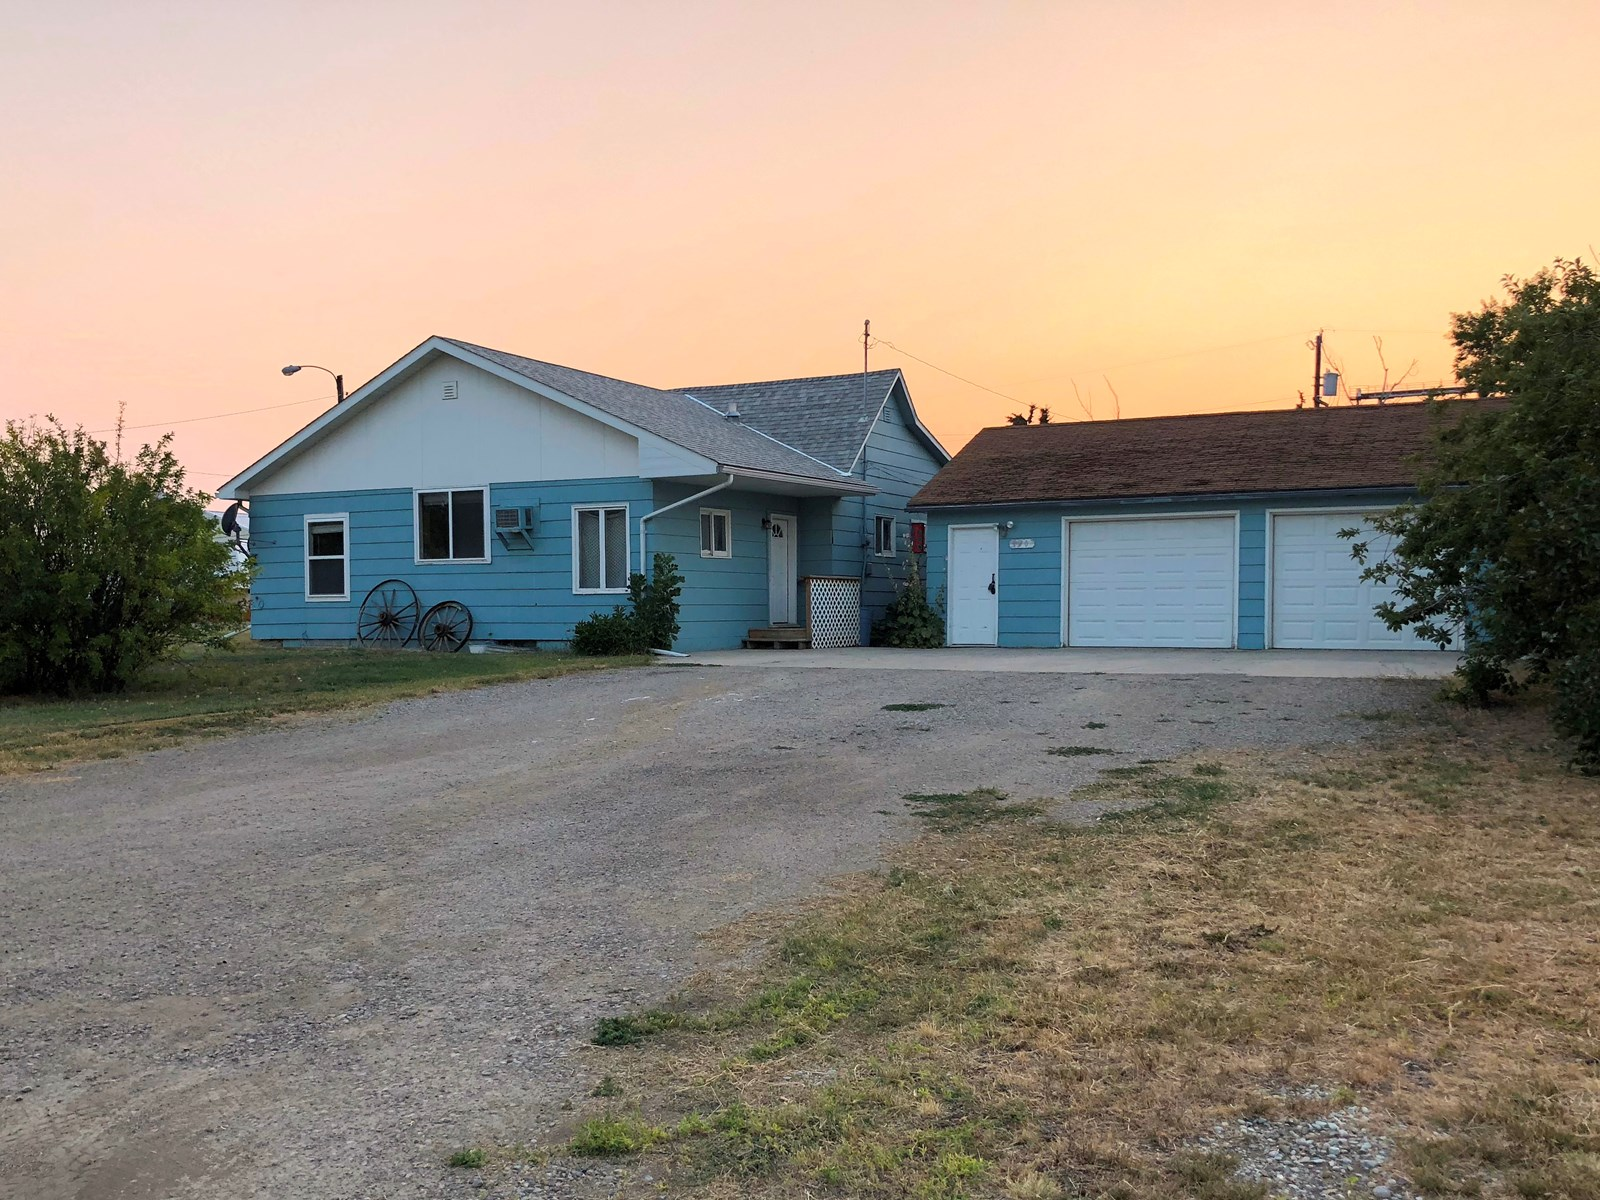 3 Bed, 1 Bath Home on Double Corner Lot for sale